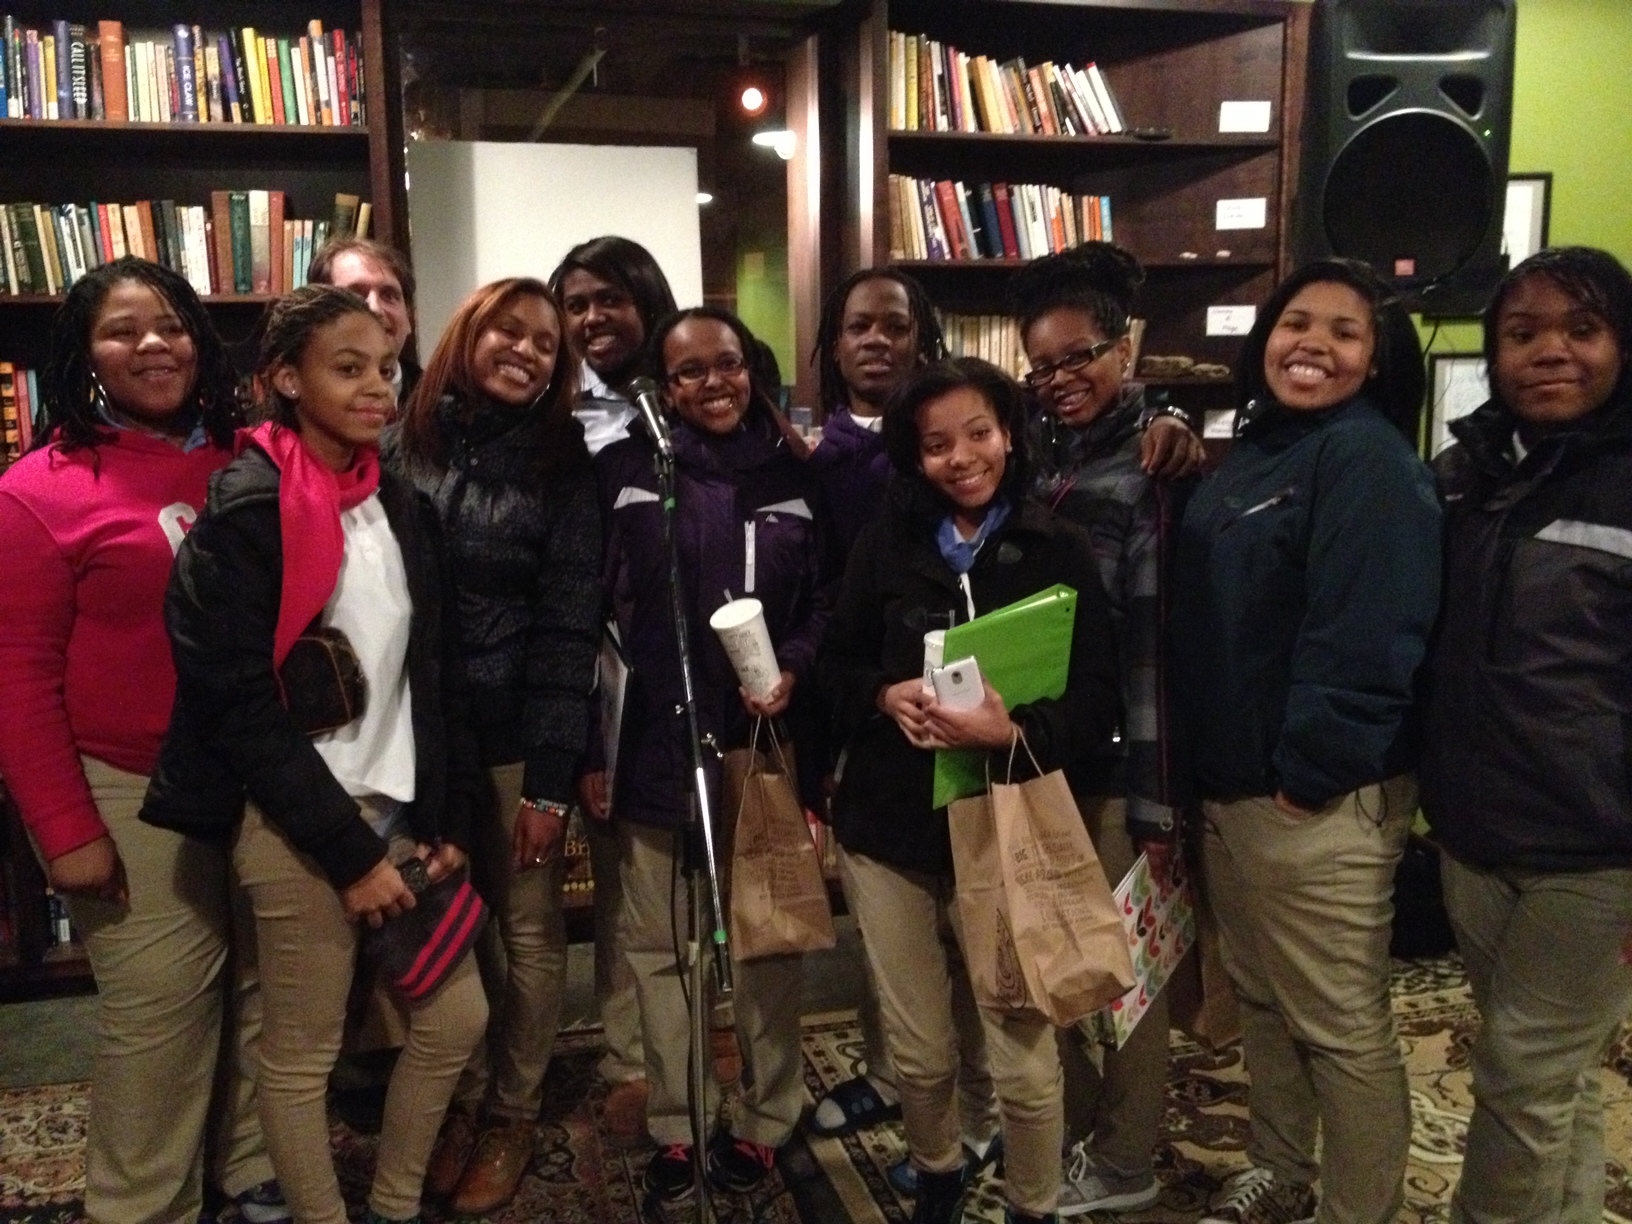 Seed students after their reading.